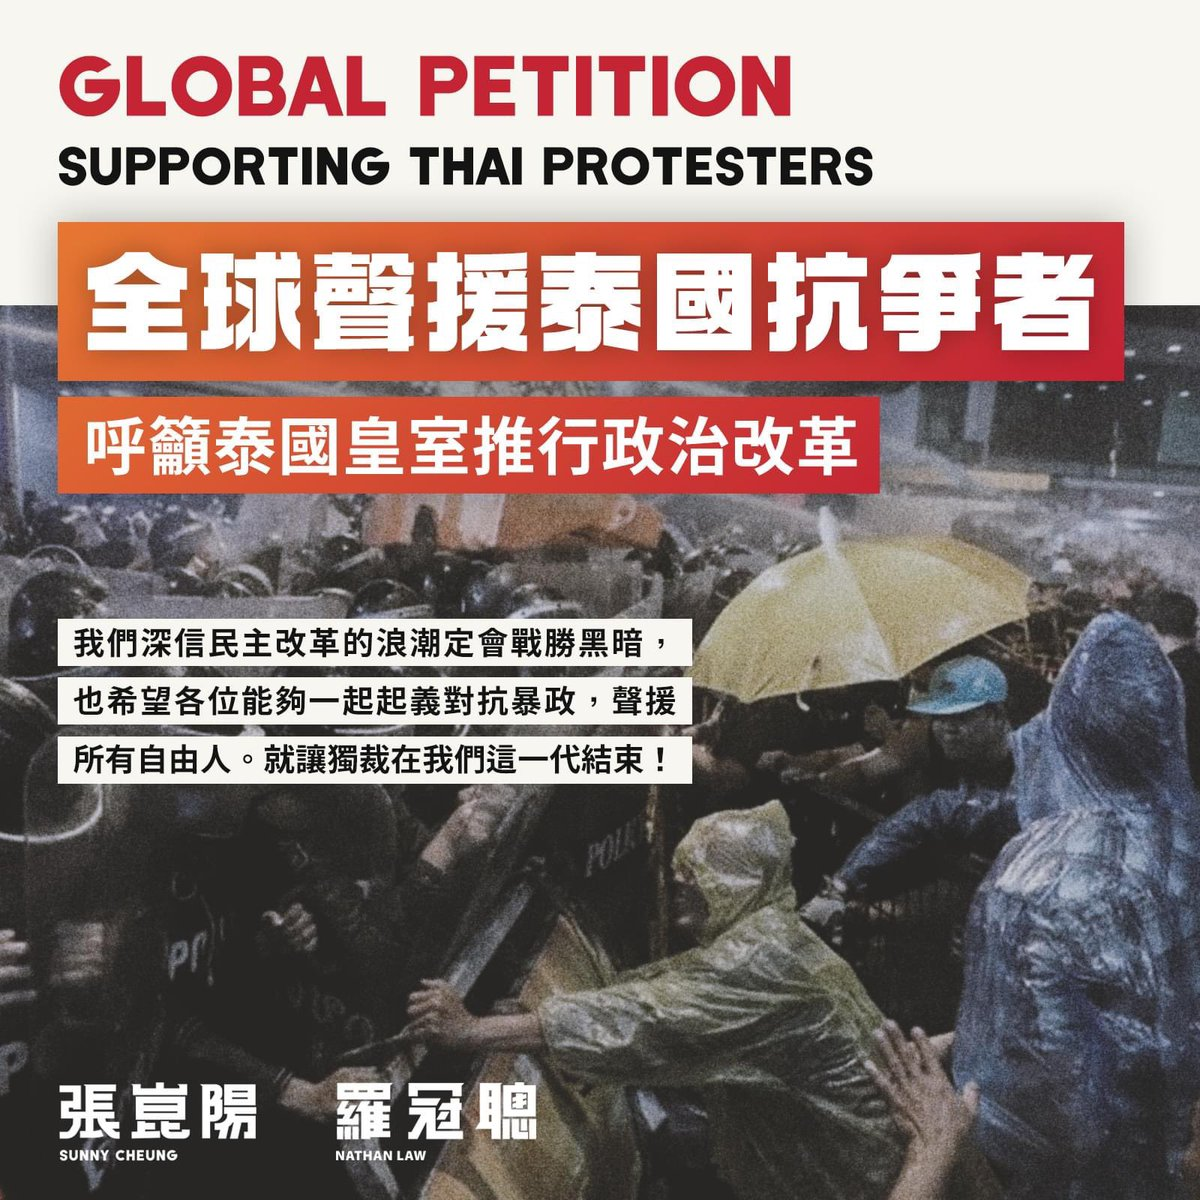 @nathanlawkc and I launch a global petition to call for support for Thai protesters. Thai Monarch must listen to people and undergo reforms. It's not the medieval age, Monarch can't use divine right to justify repression. Plz #StandWithThailand Join us: chng.it/KVz8msP9Fh